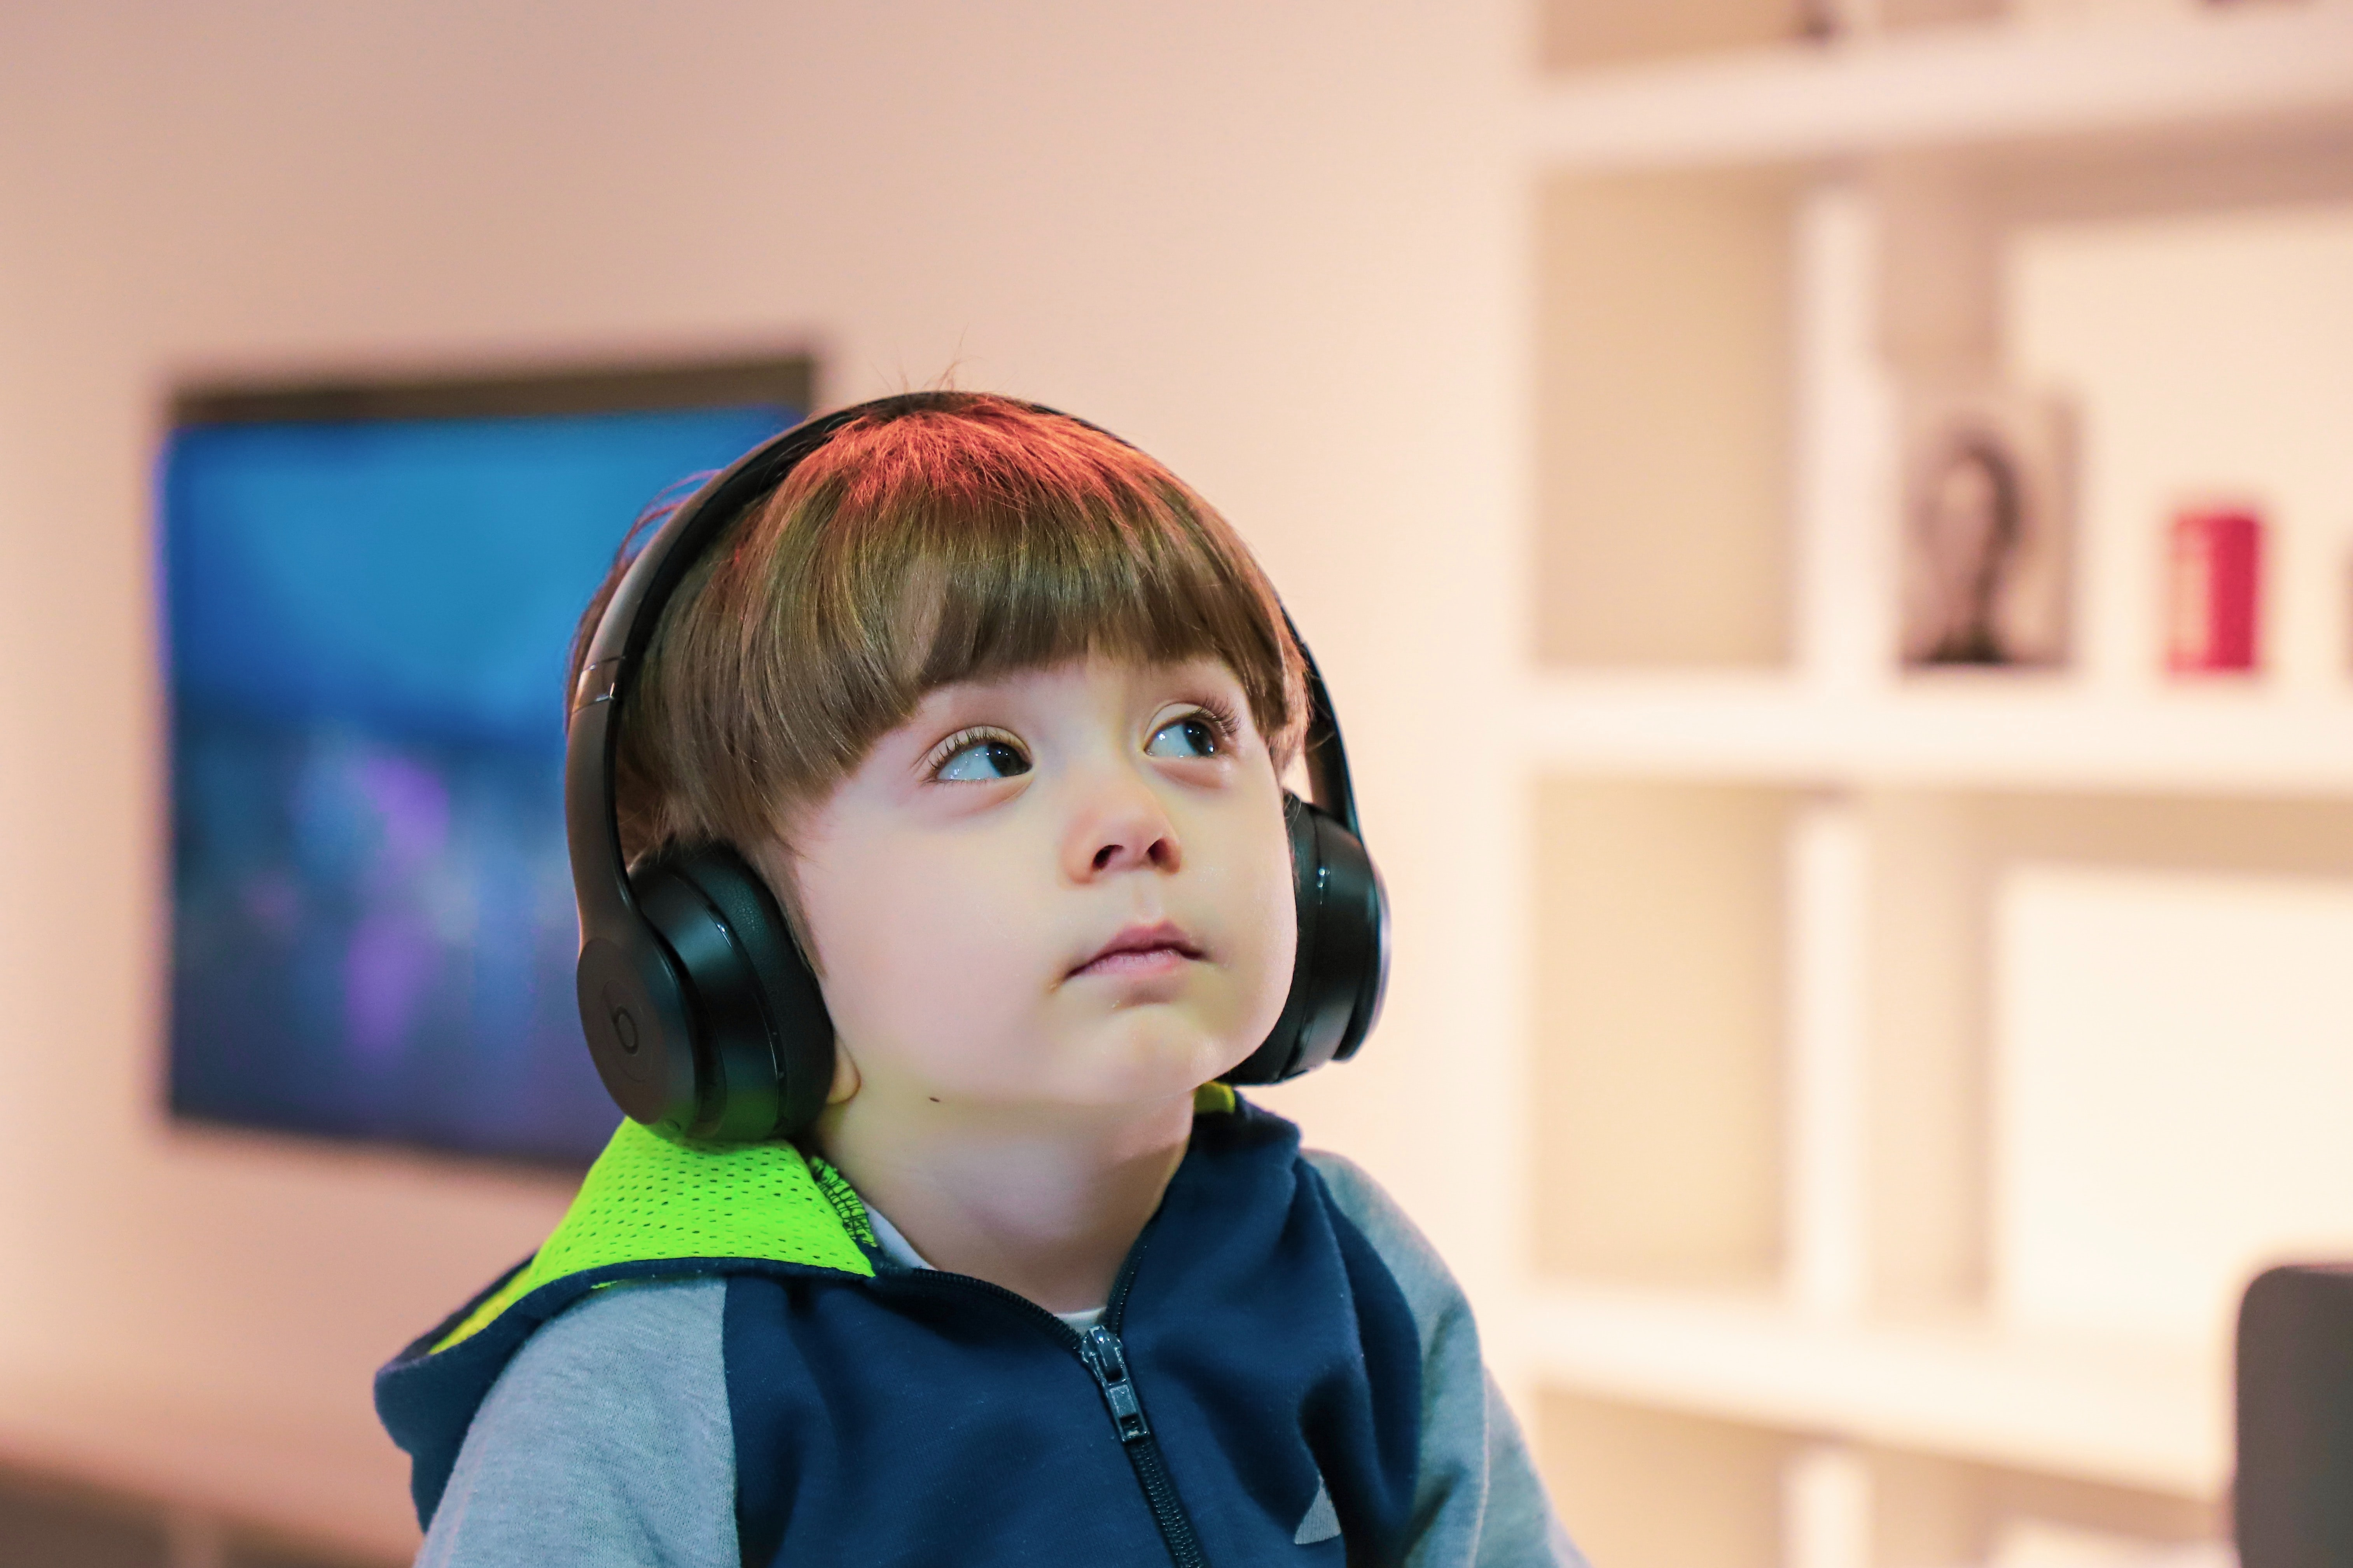 young child looking at a screen with headphones on.